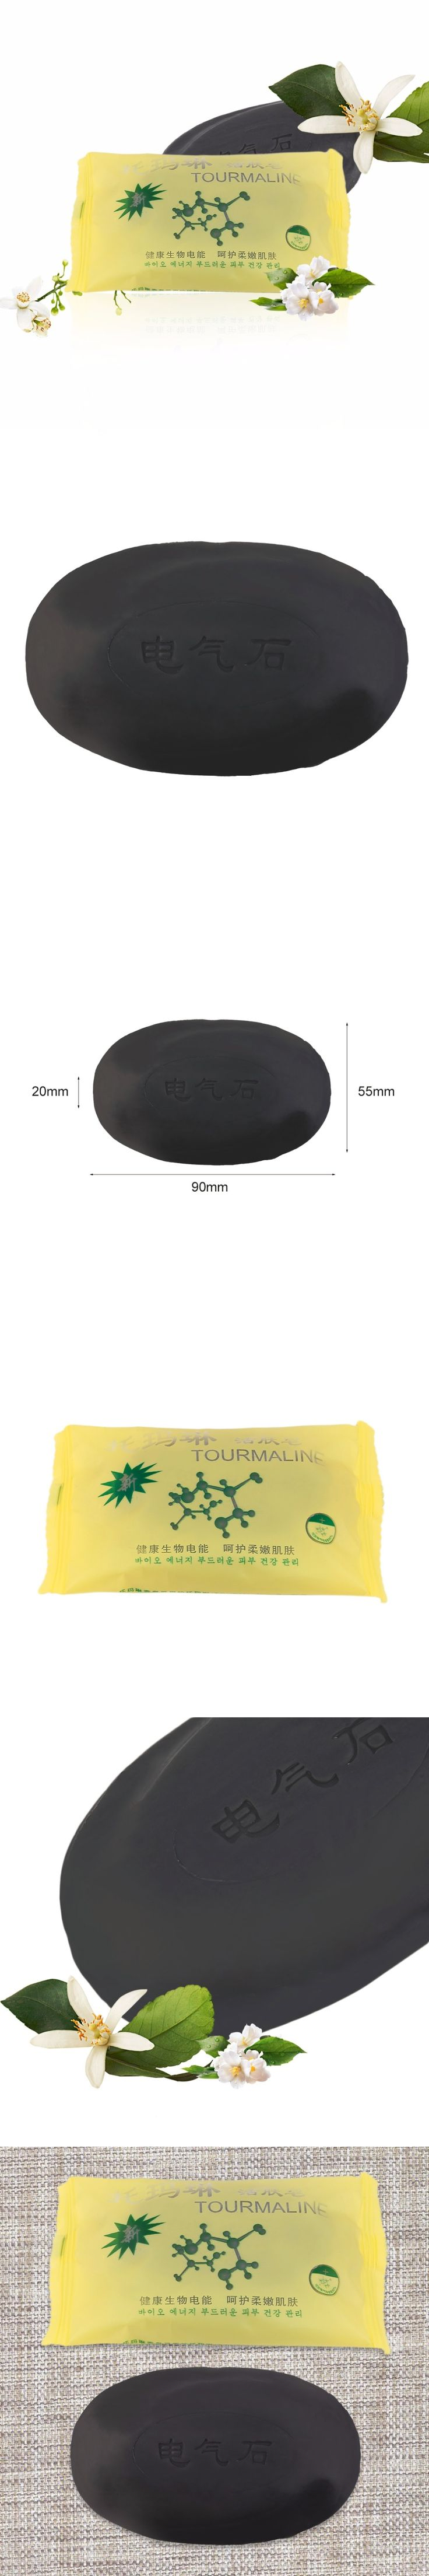 Tourmaline Bamboo Active Energy Soap Charcoal Energy Soap Concentrated Sulfur Soap For Face & Body Beauty Healthy Top Sale